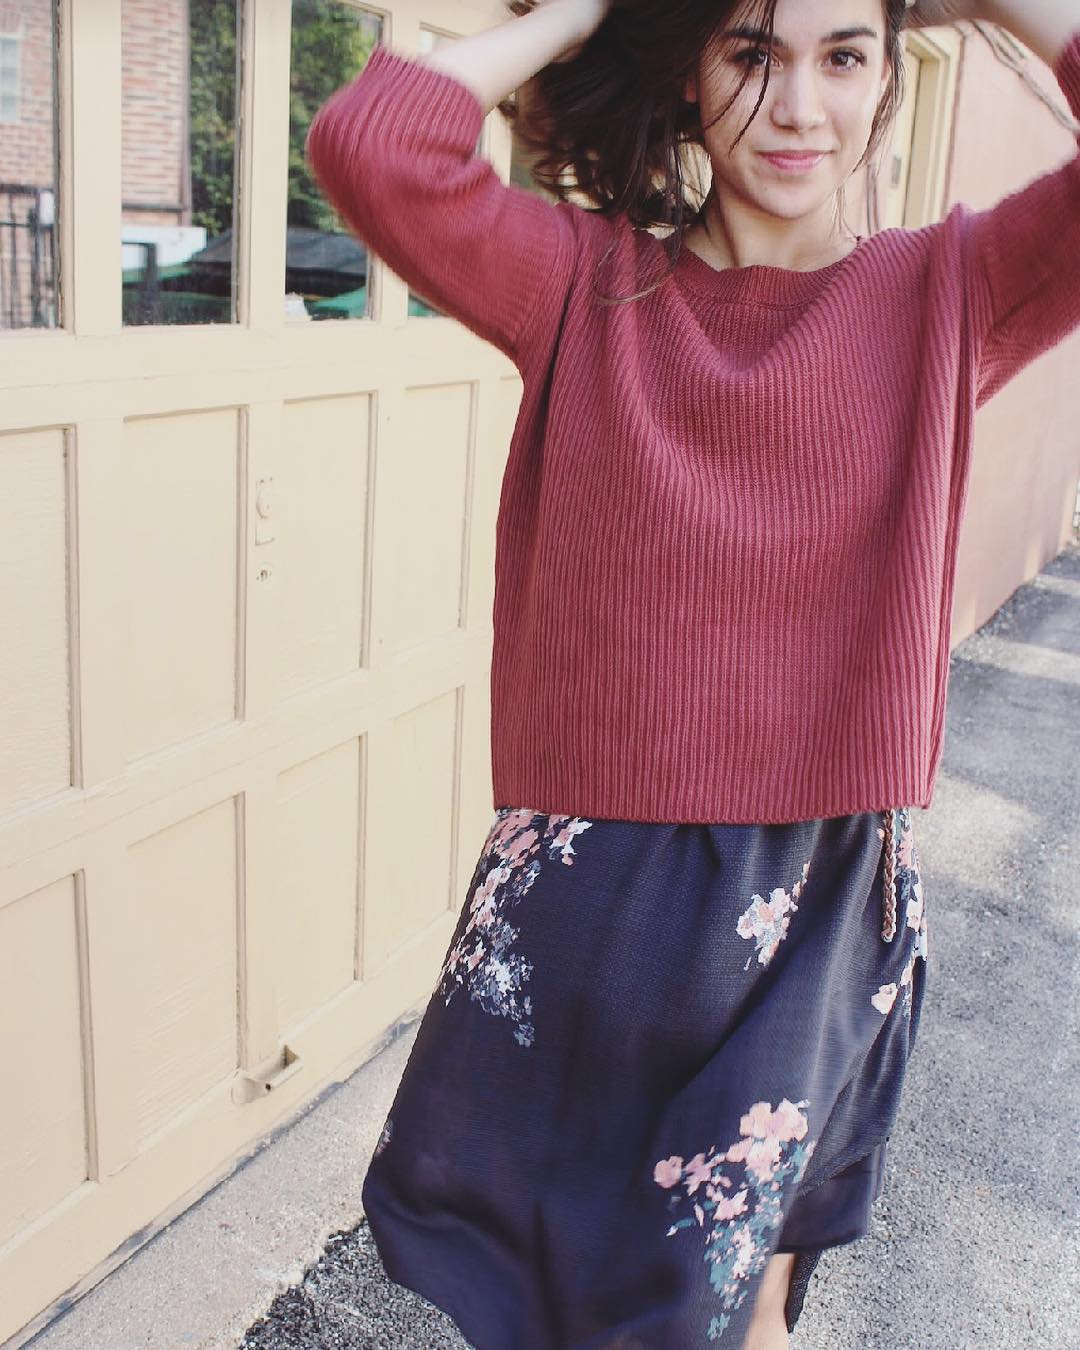 Floral Dress With Simple Maroon Short Sweater